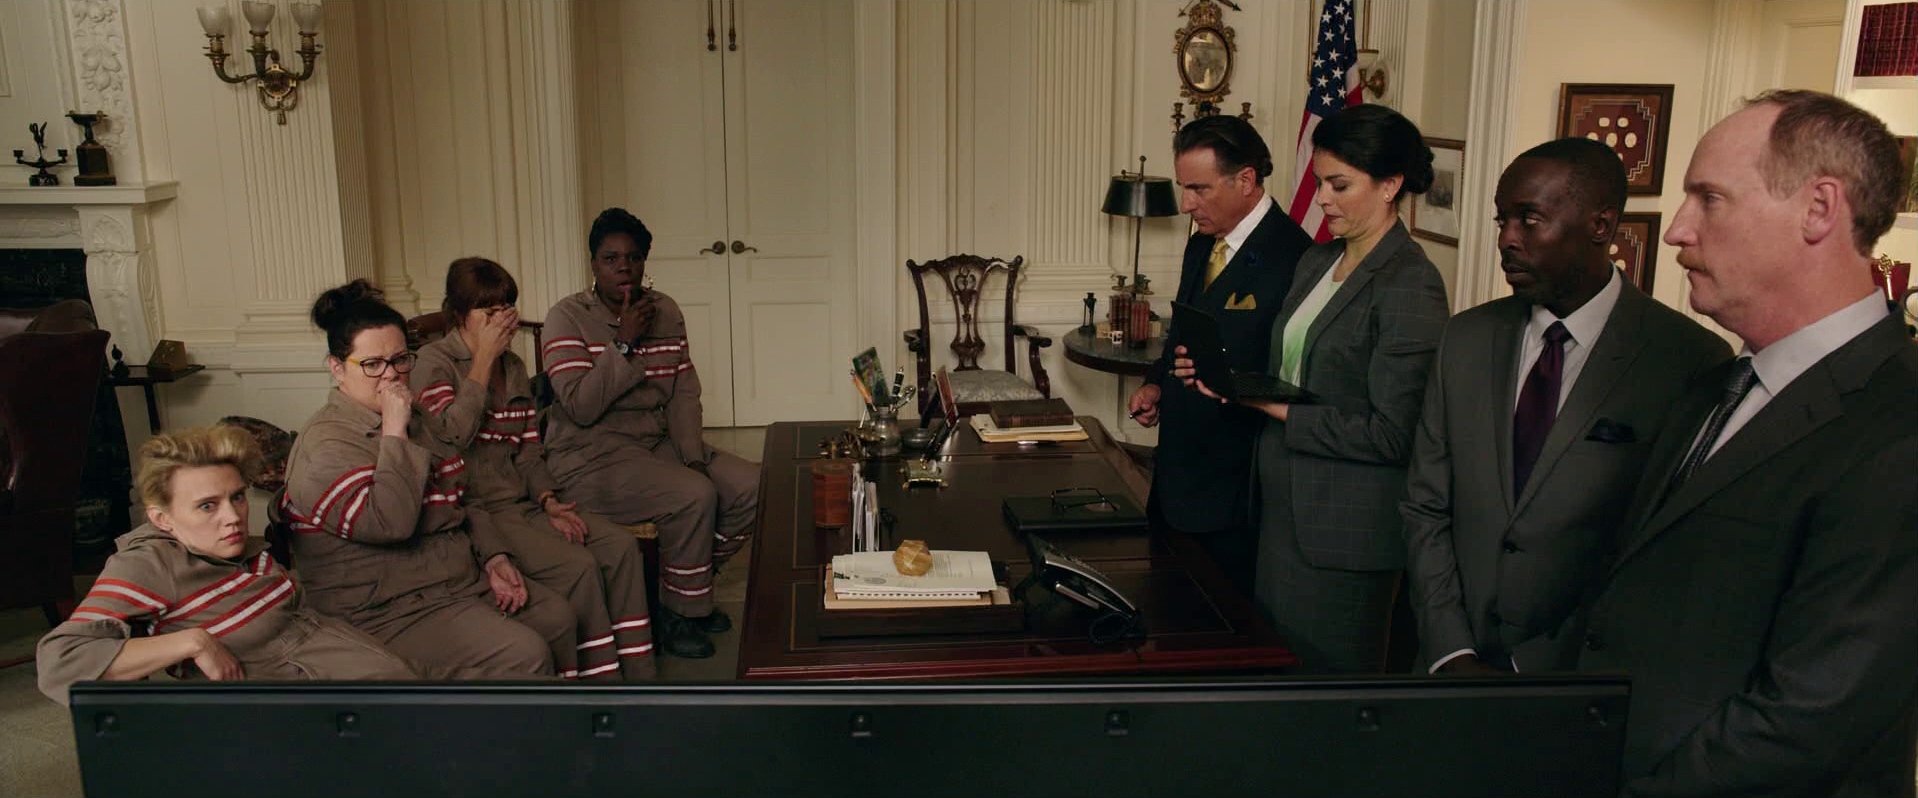 Ghostbusters (2016 Movie) (Deleted Scene): The Mayor's Office